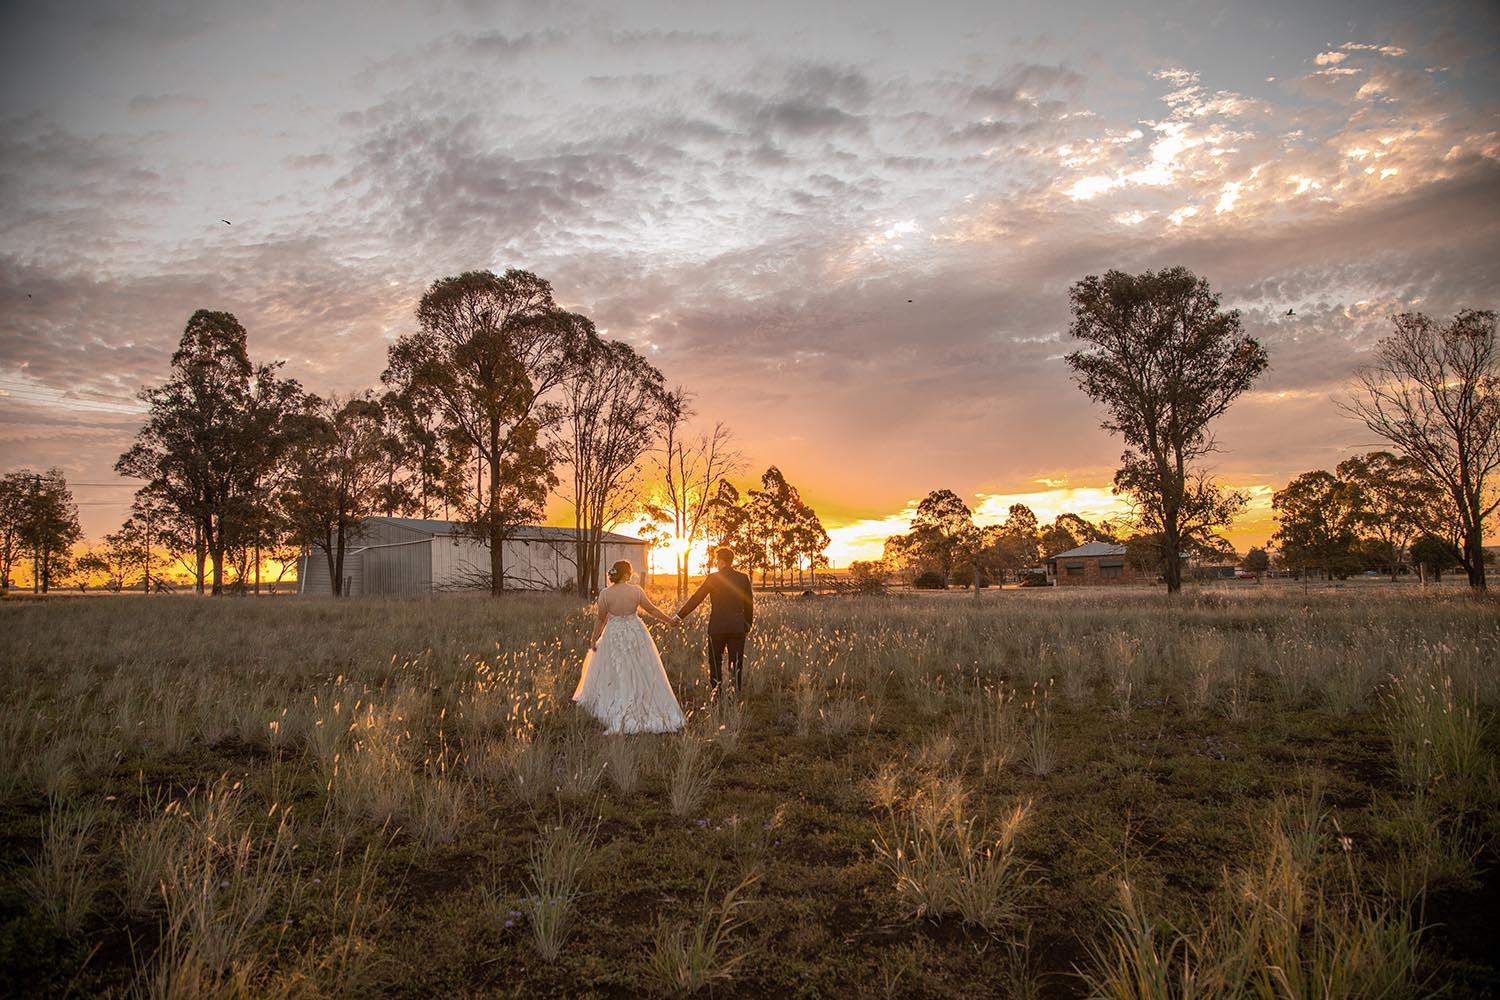 Wedding Photography - Couple in sunset